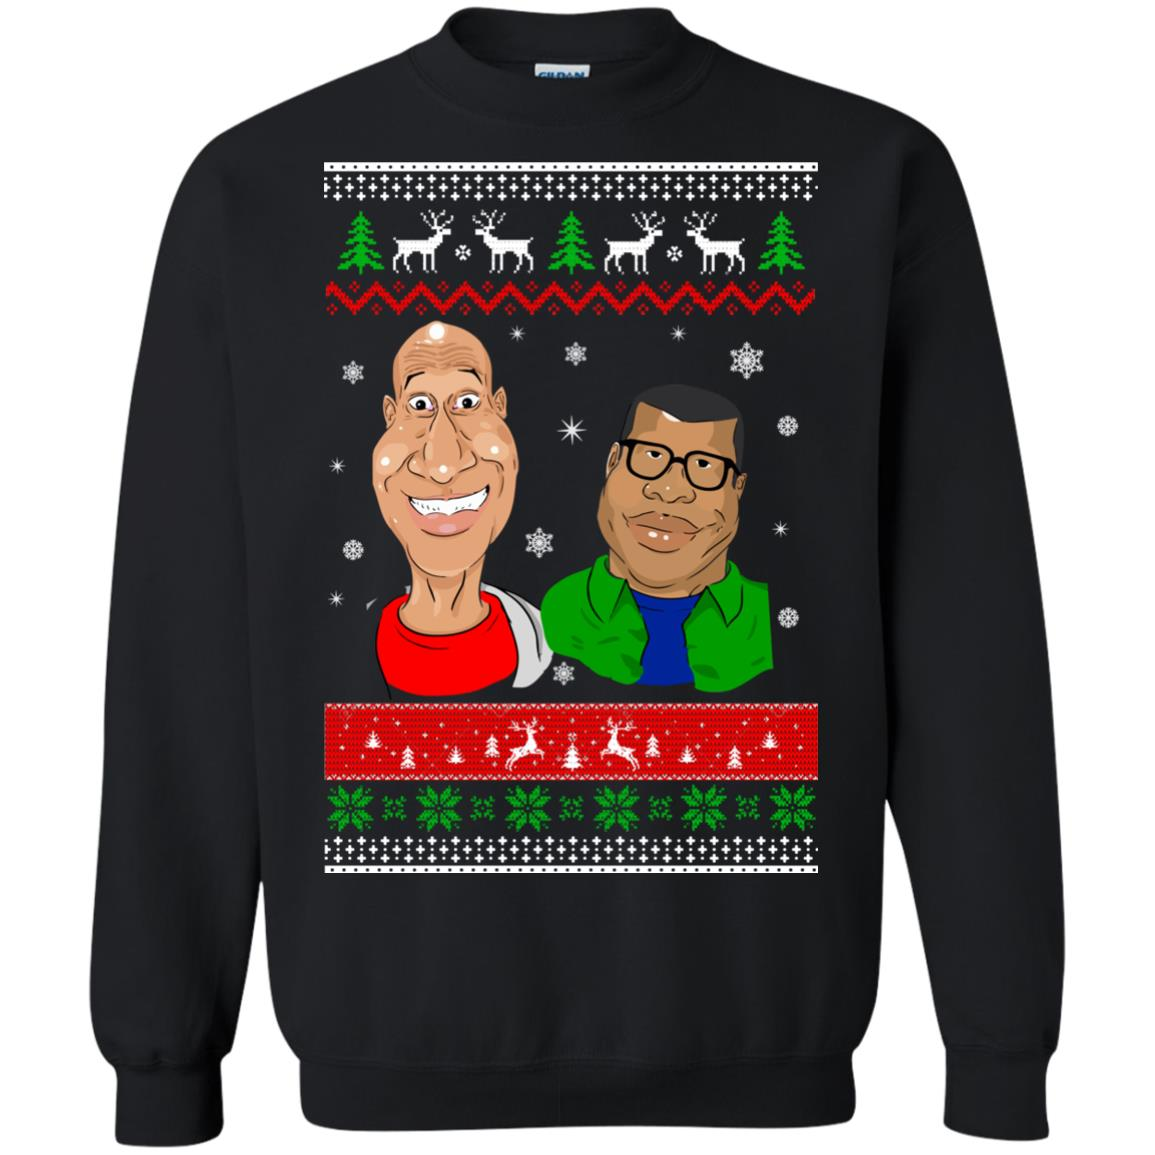 image 524 - Key and Peele Cartoon Christmas Ugly Sweater